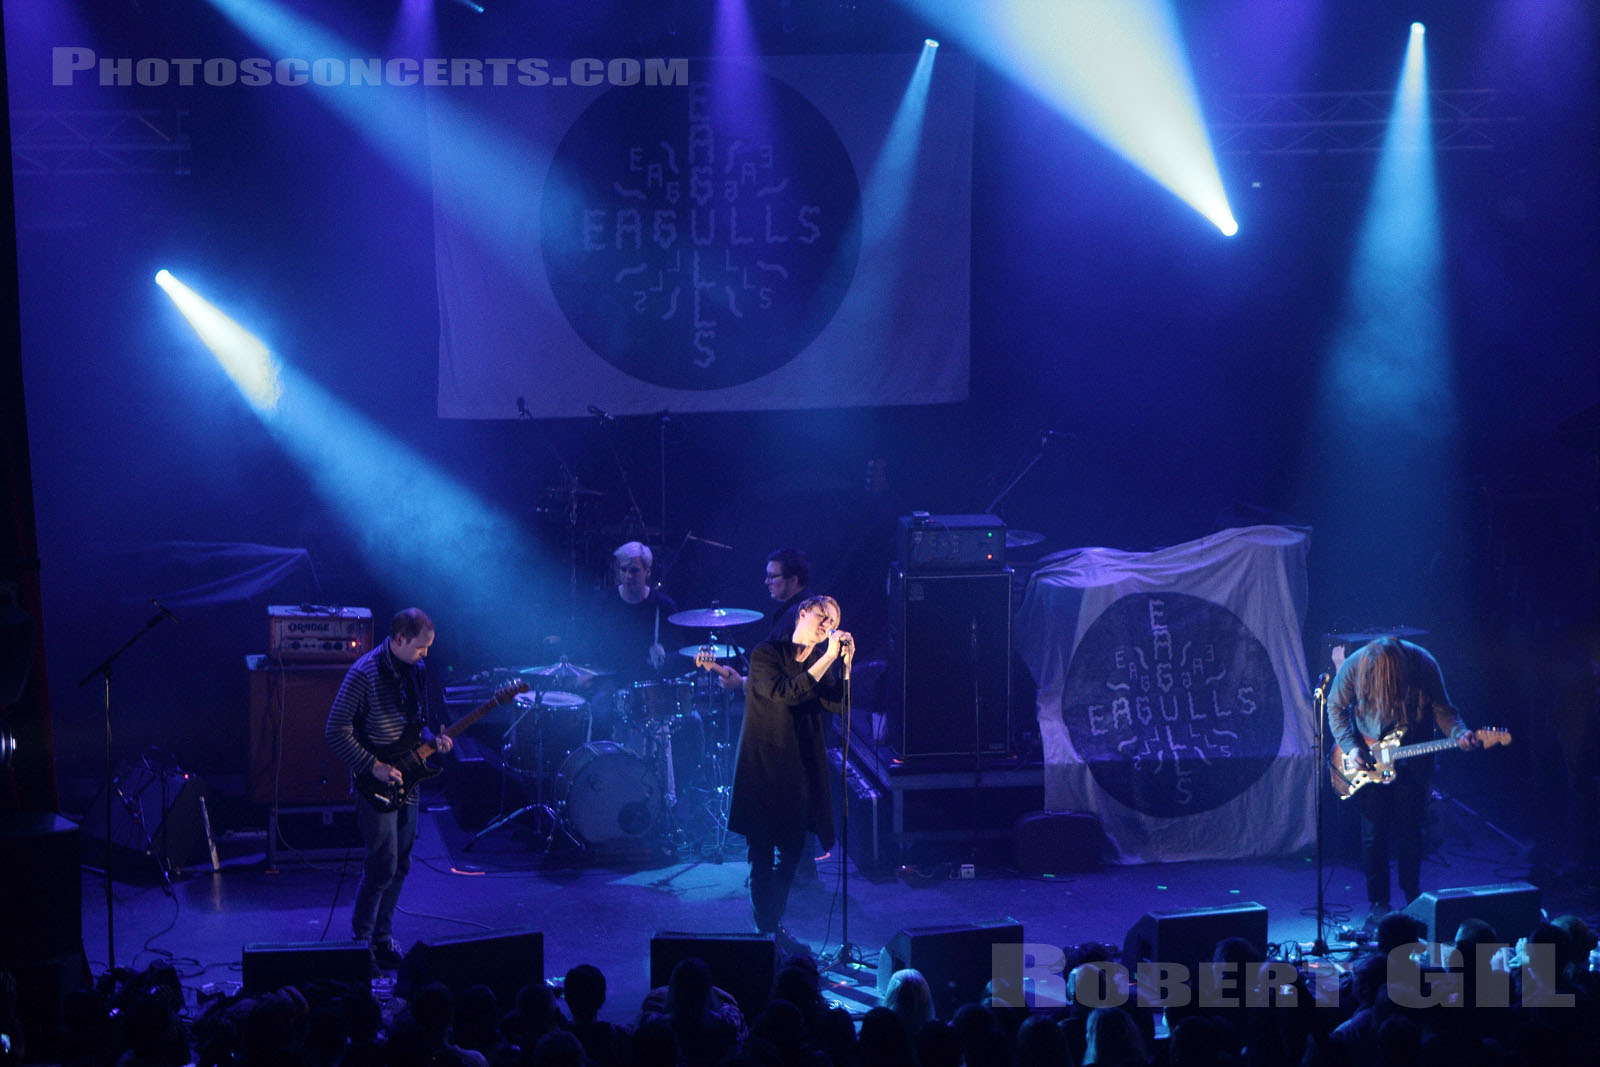 EAGULLS - 2014-11-16 - PARIS - La Cigale